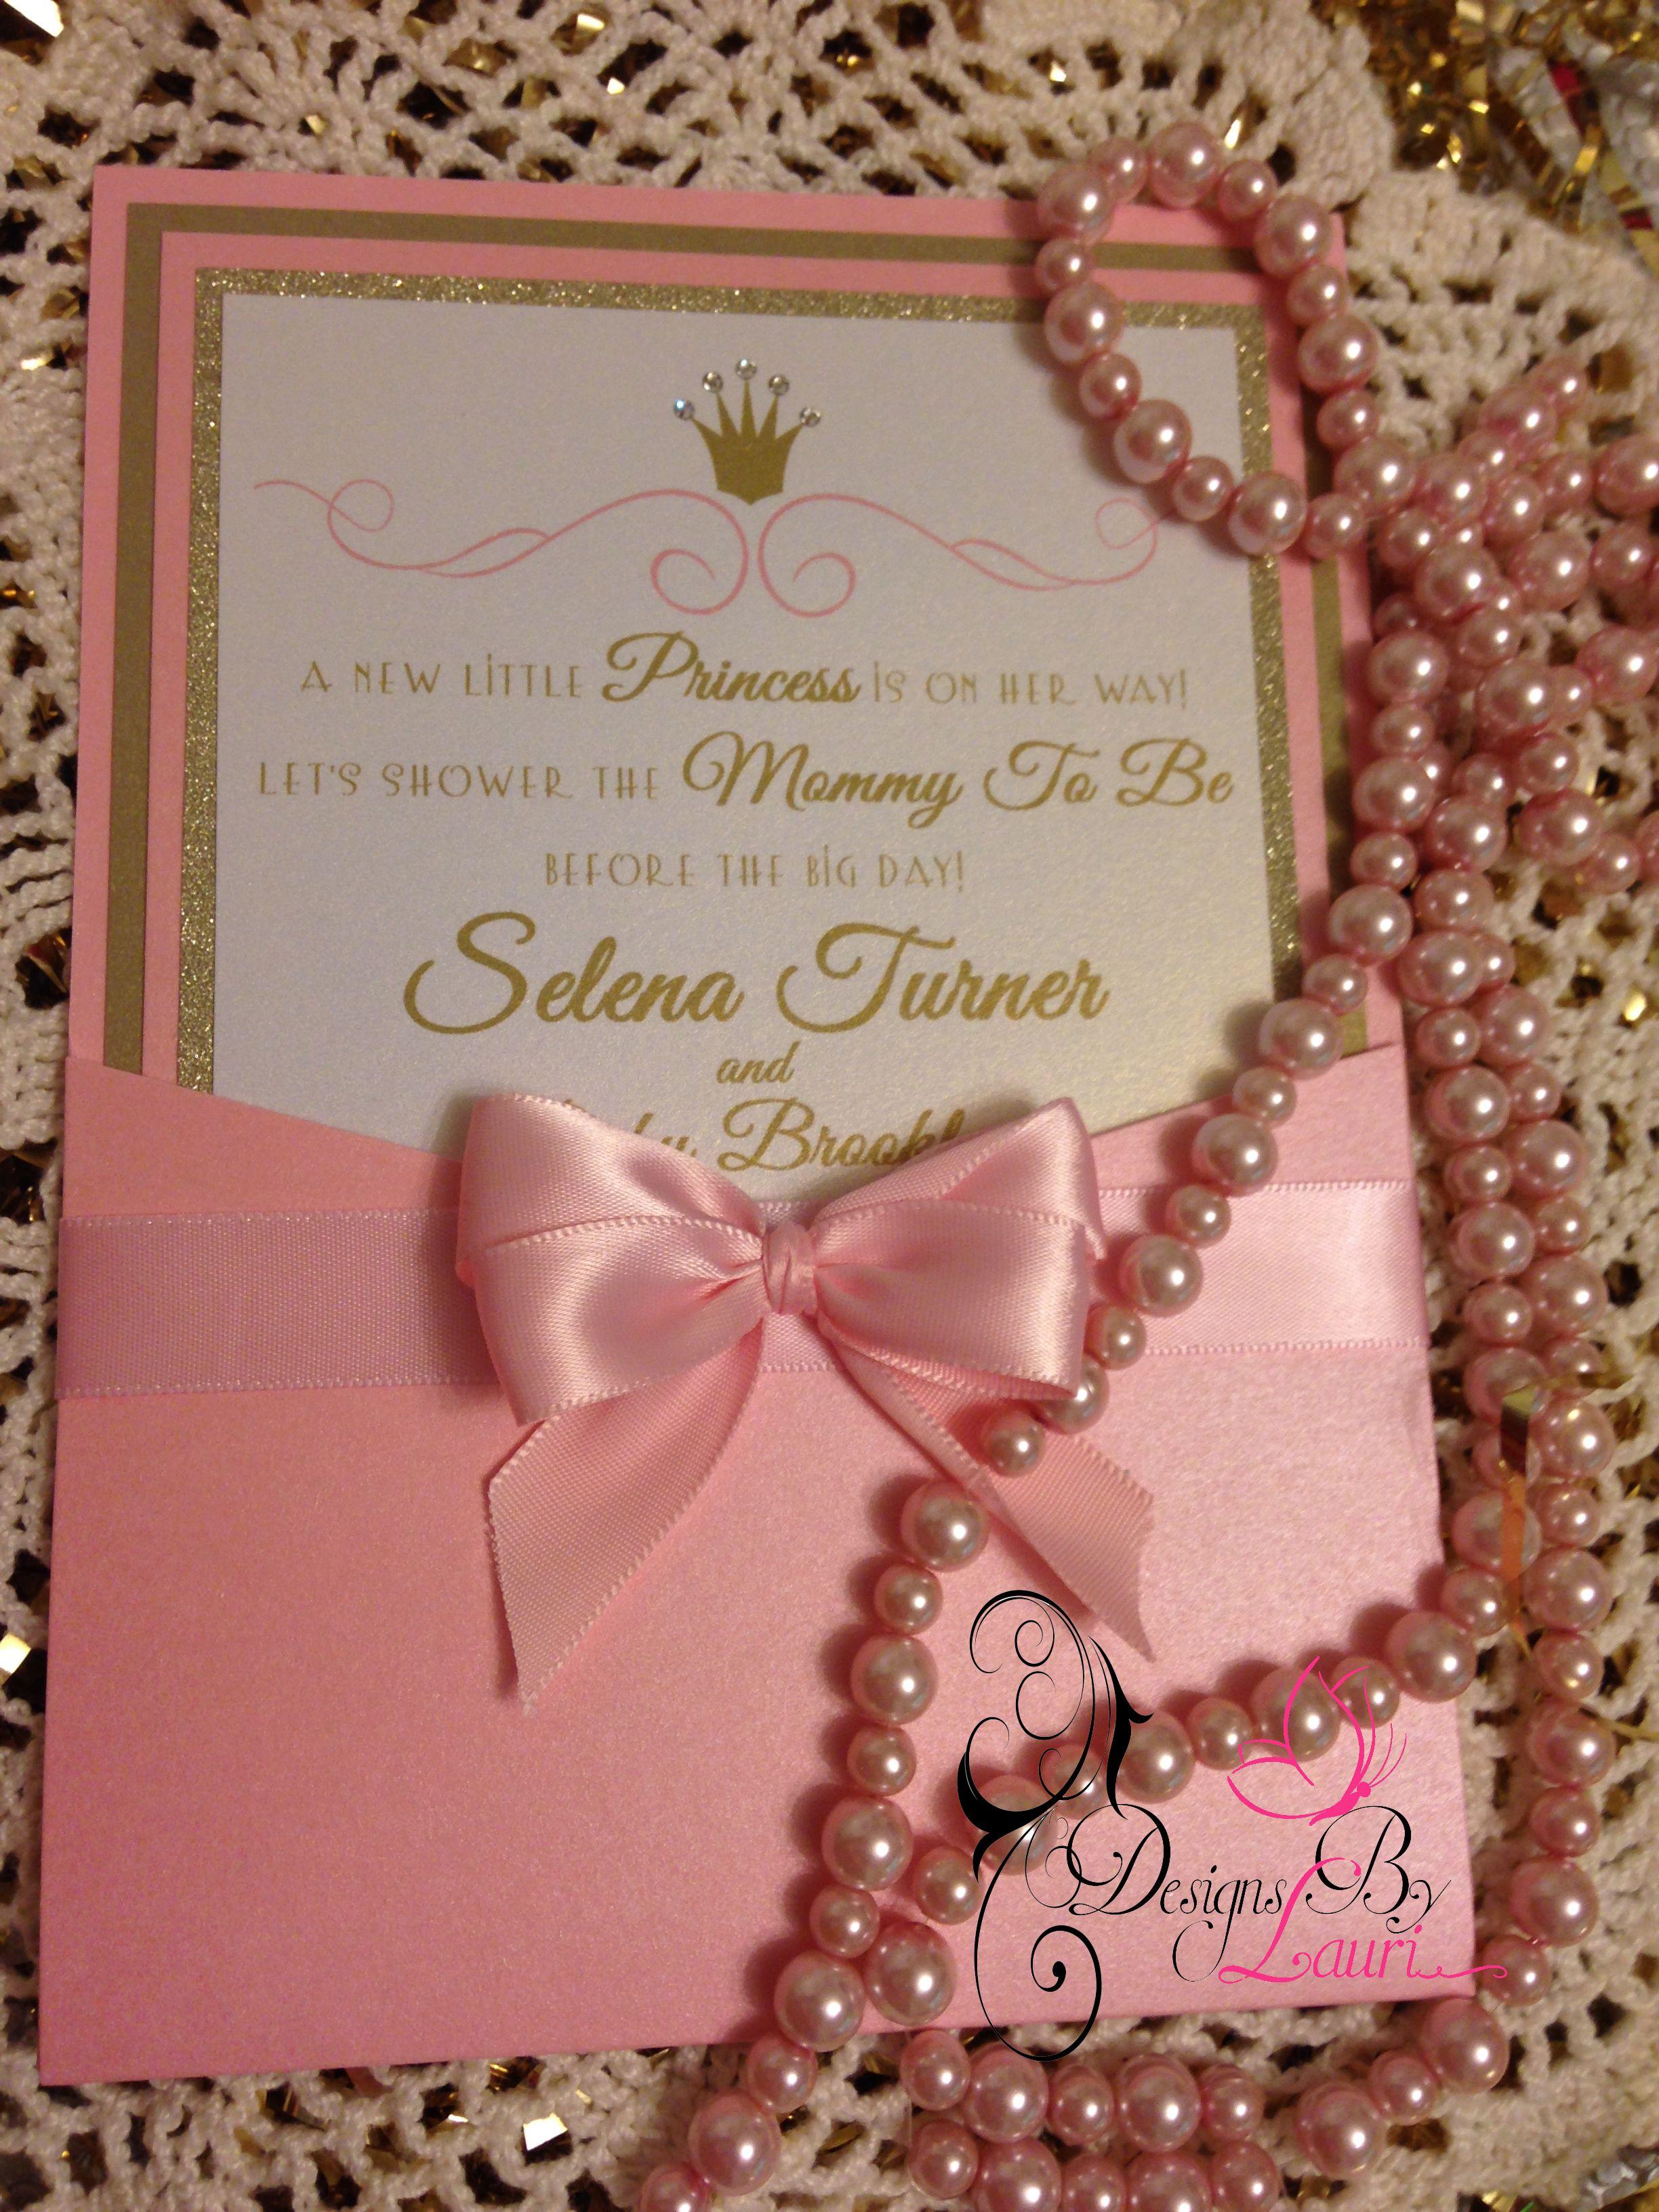 Gold color cardstock paper 5x7 - Pretty Pink Princess Invitation Made By Designs By Lauri 5x7 Denali Pocket In Pink Metallic Shimmer